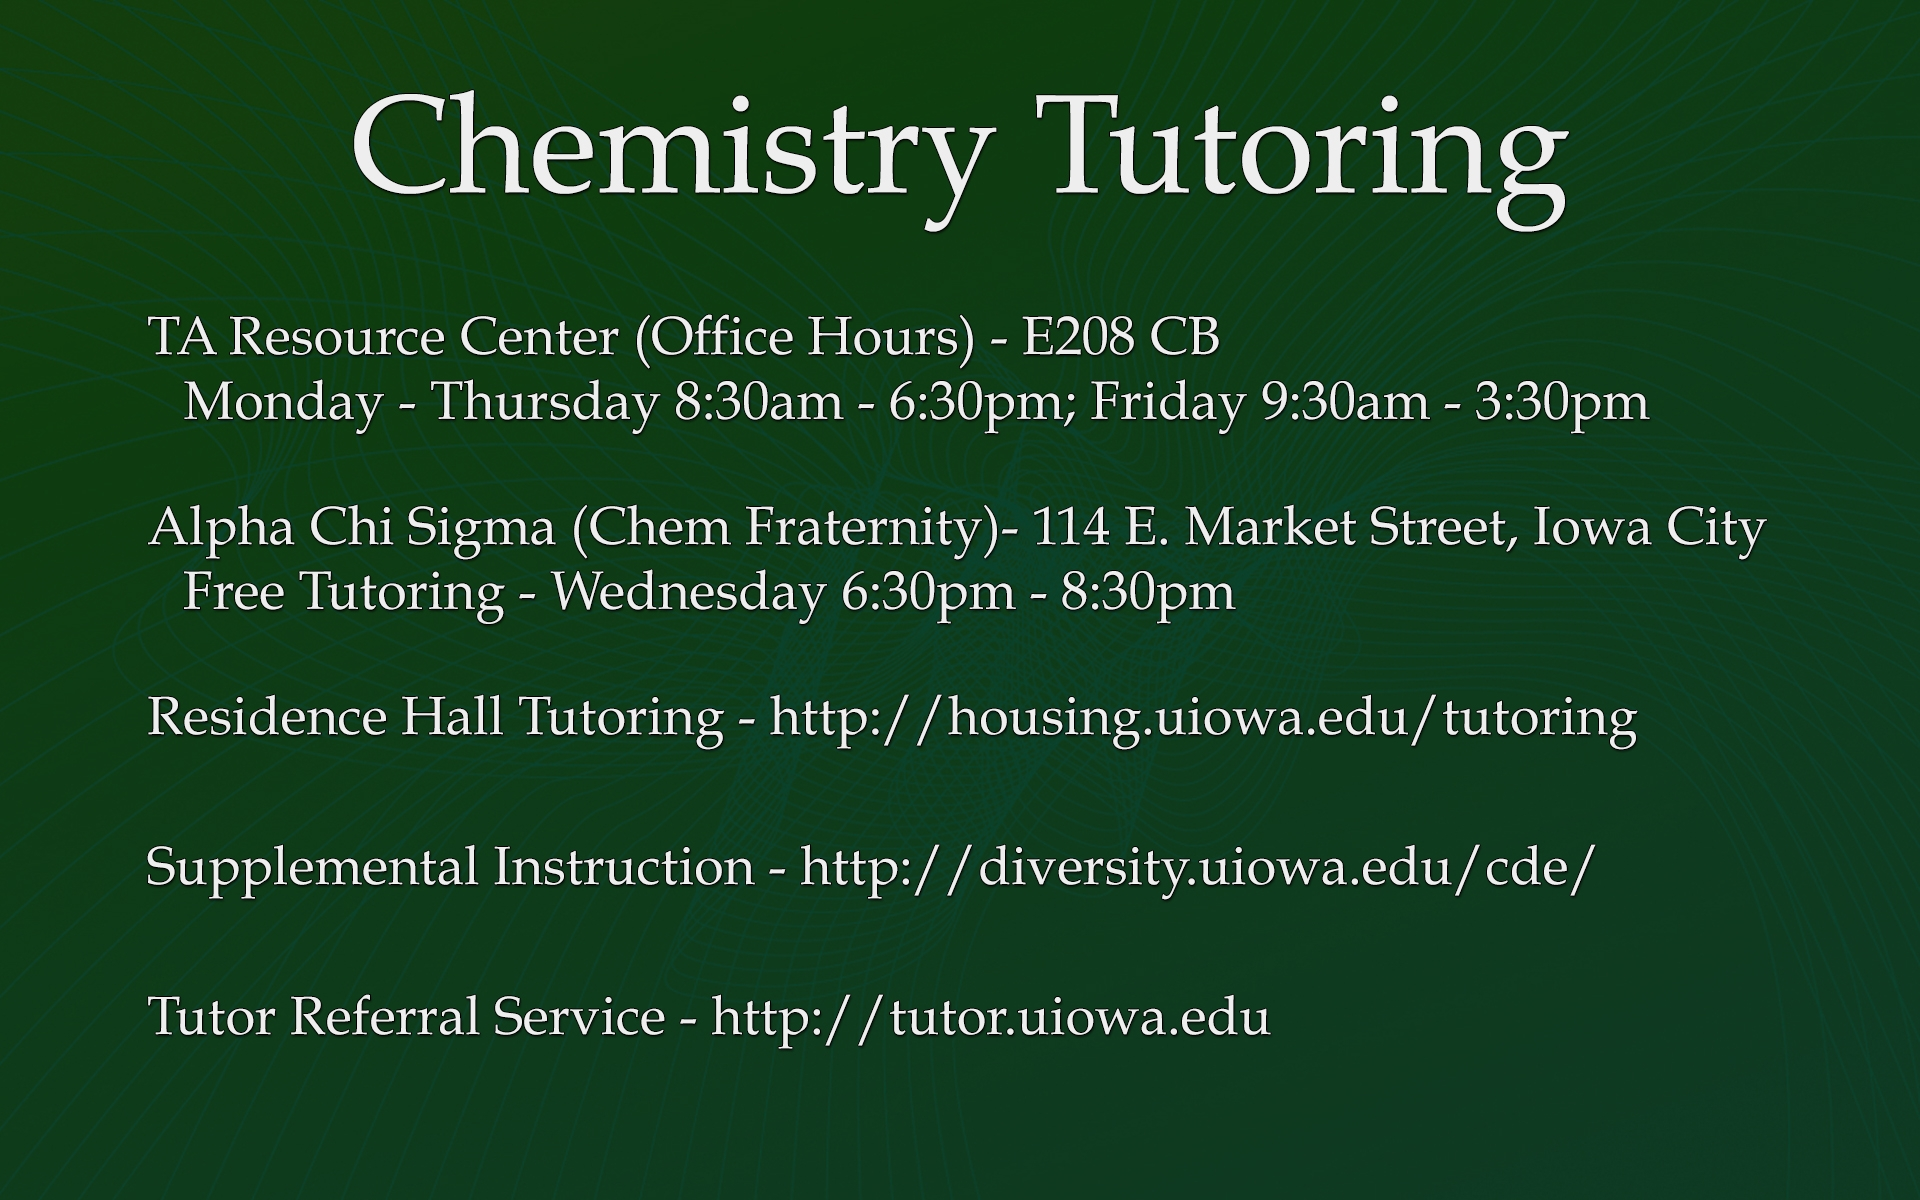 Chemistry Tutoring, TA Resource Center (Office Hours) - E208 CB Monday - Thursday 8:30am - 6:30pm; Friday 9:30am - 3:30pm